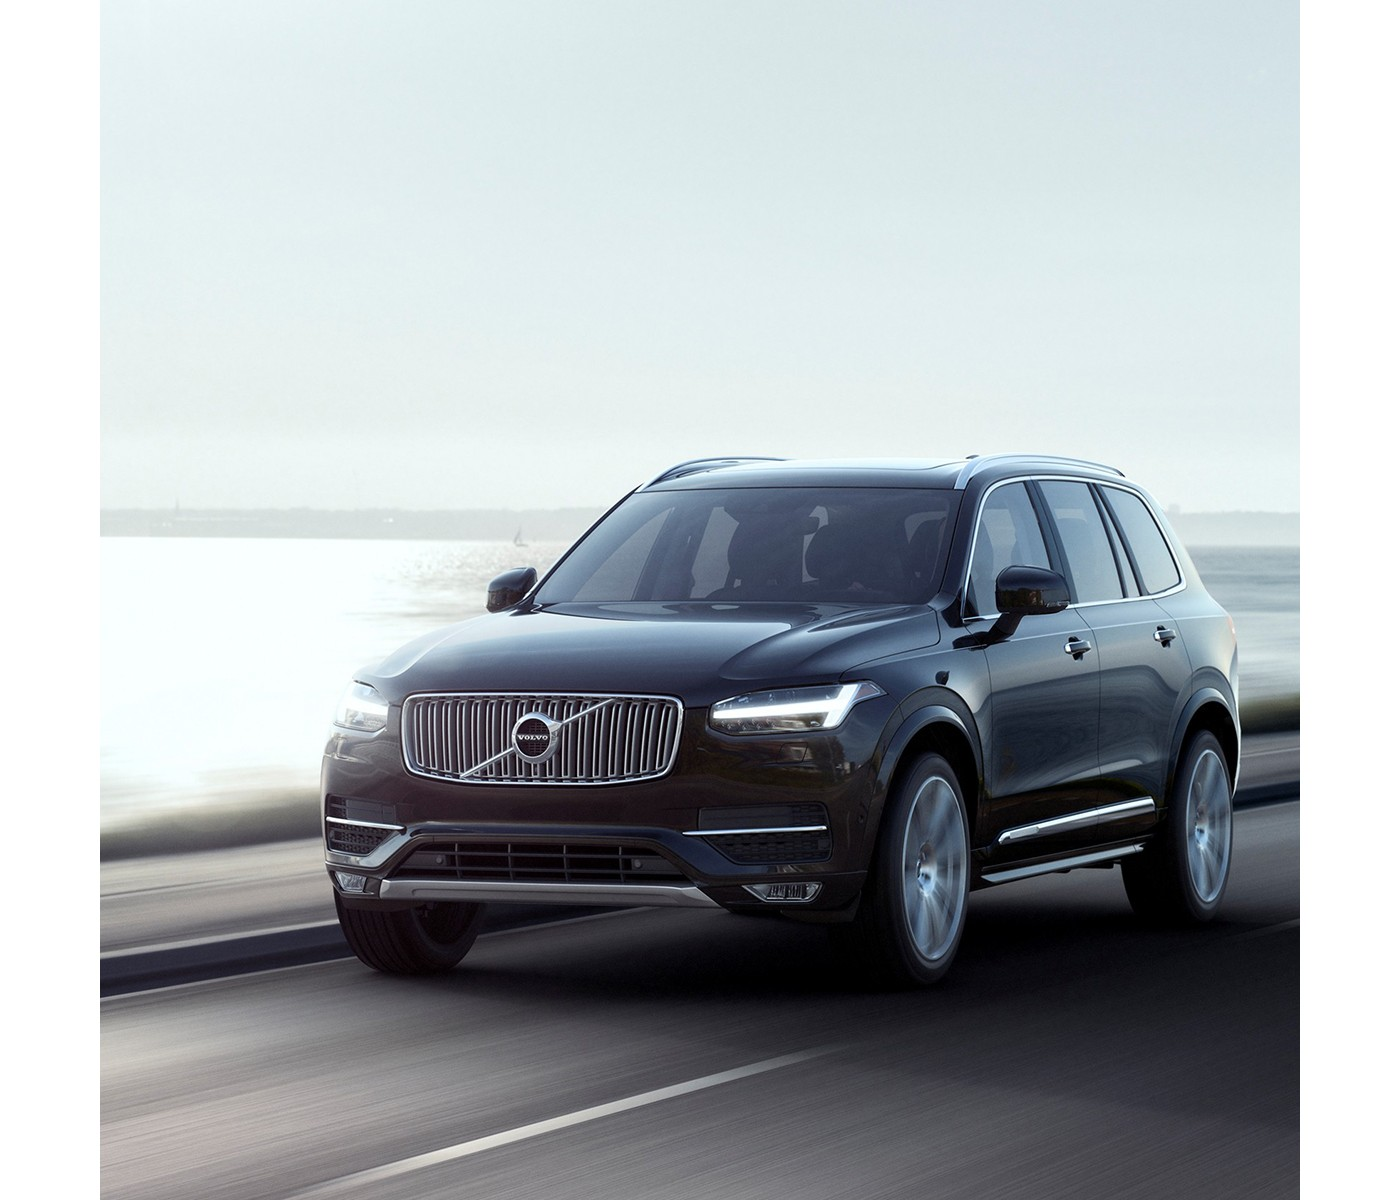 Black Volvo XC 90 sport utility vehicle driving on the highway